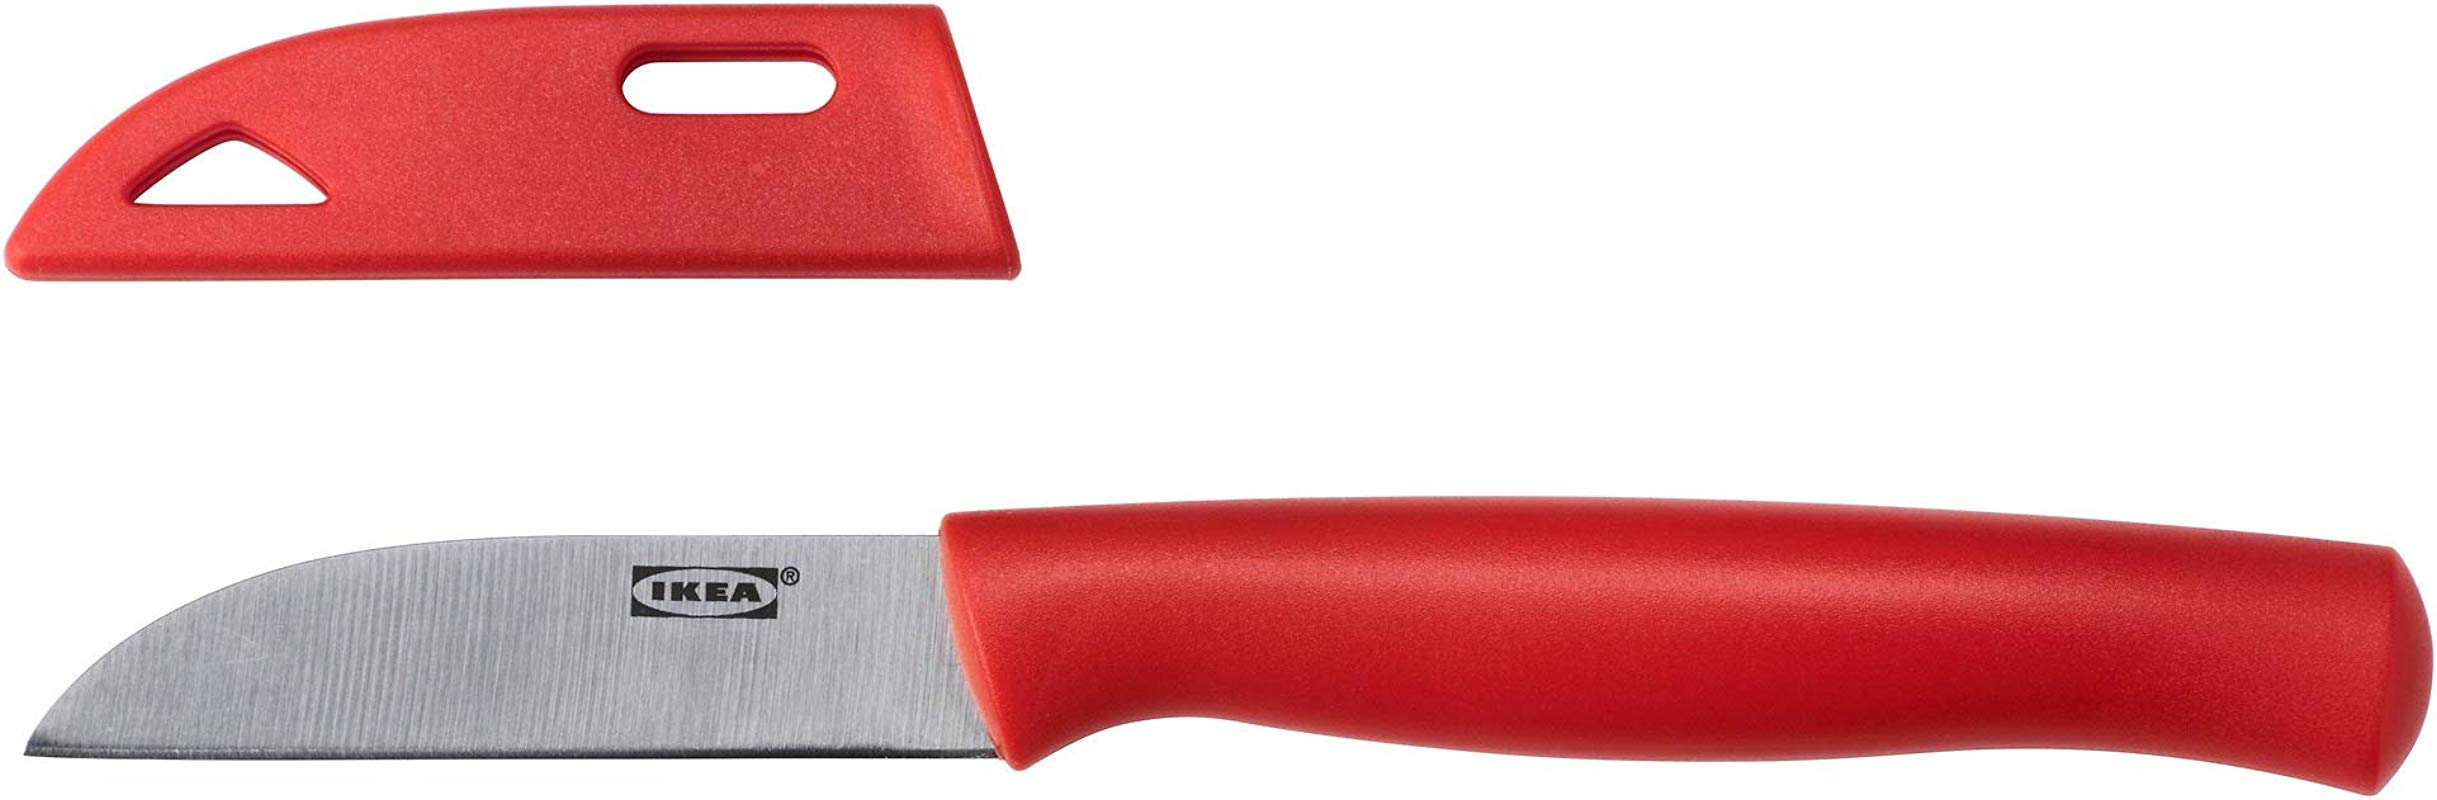 IKEA 002 876 67 Skalad Paring Knife Red